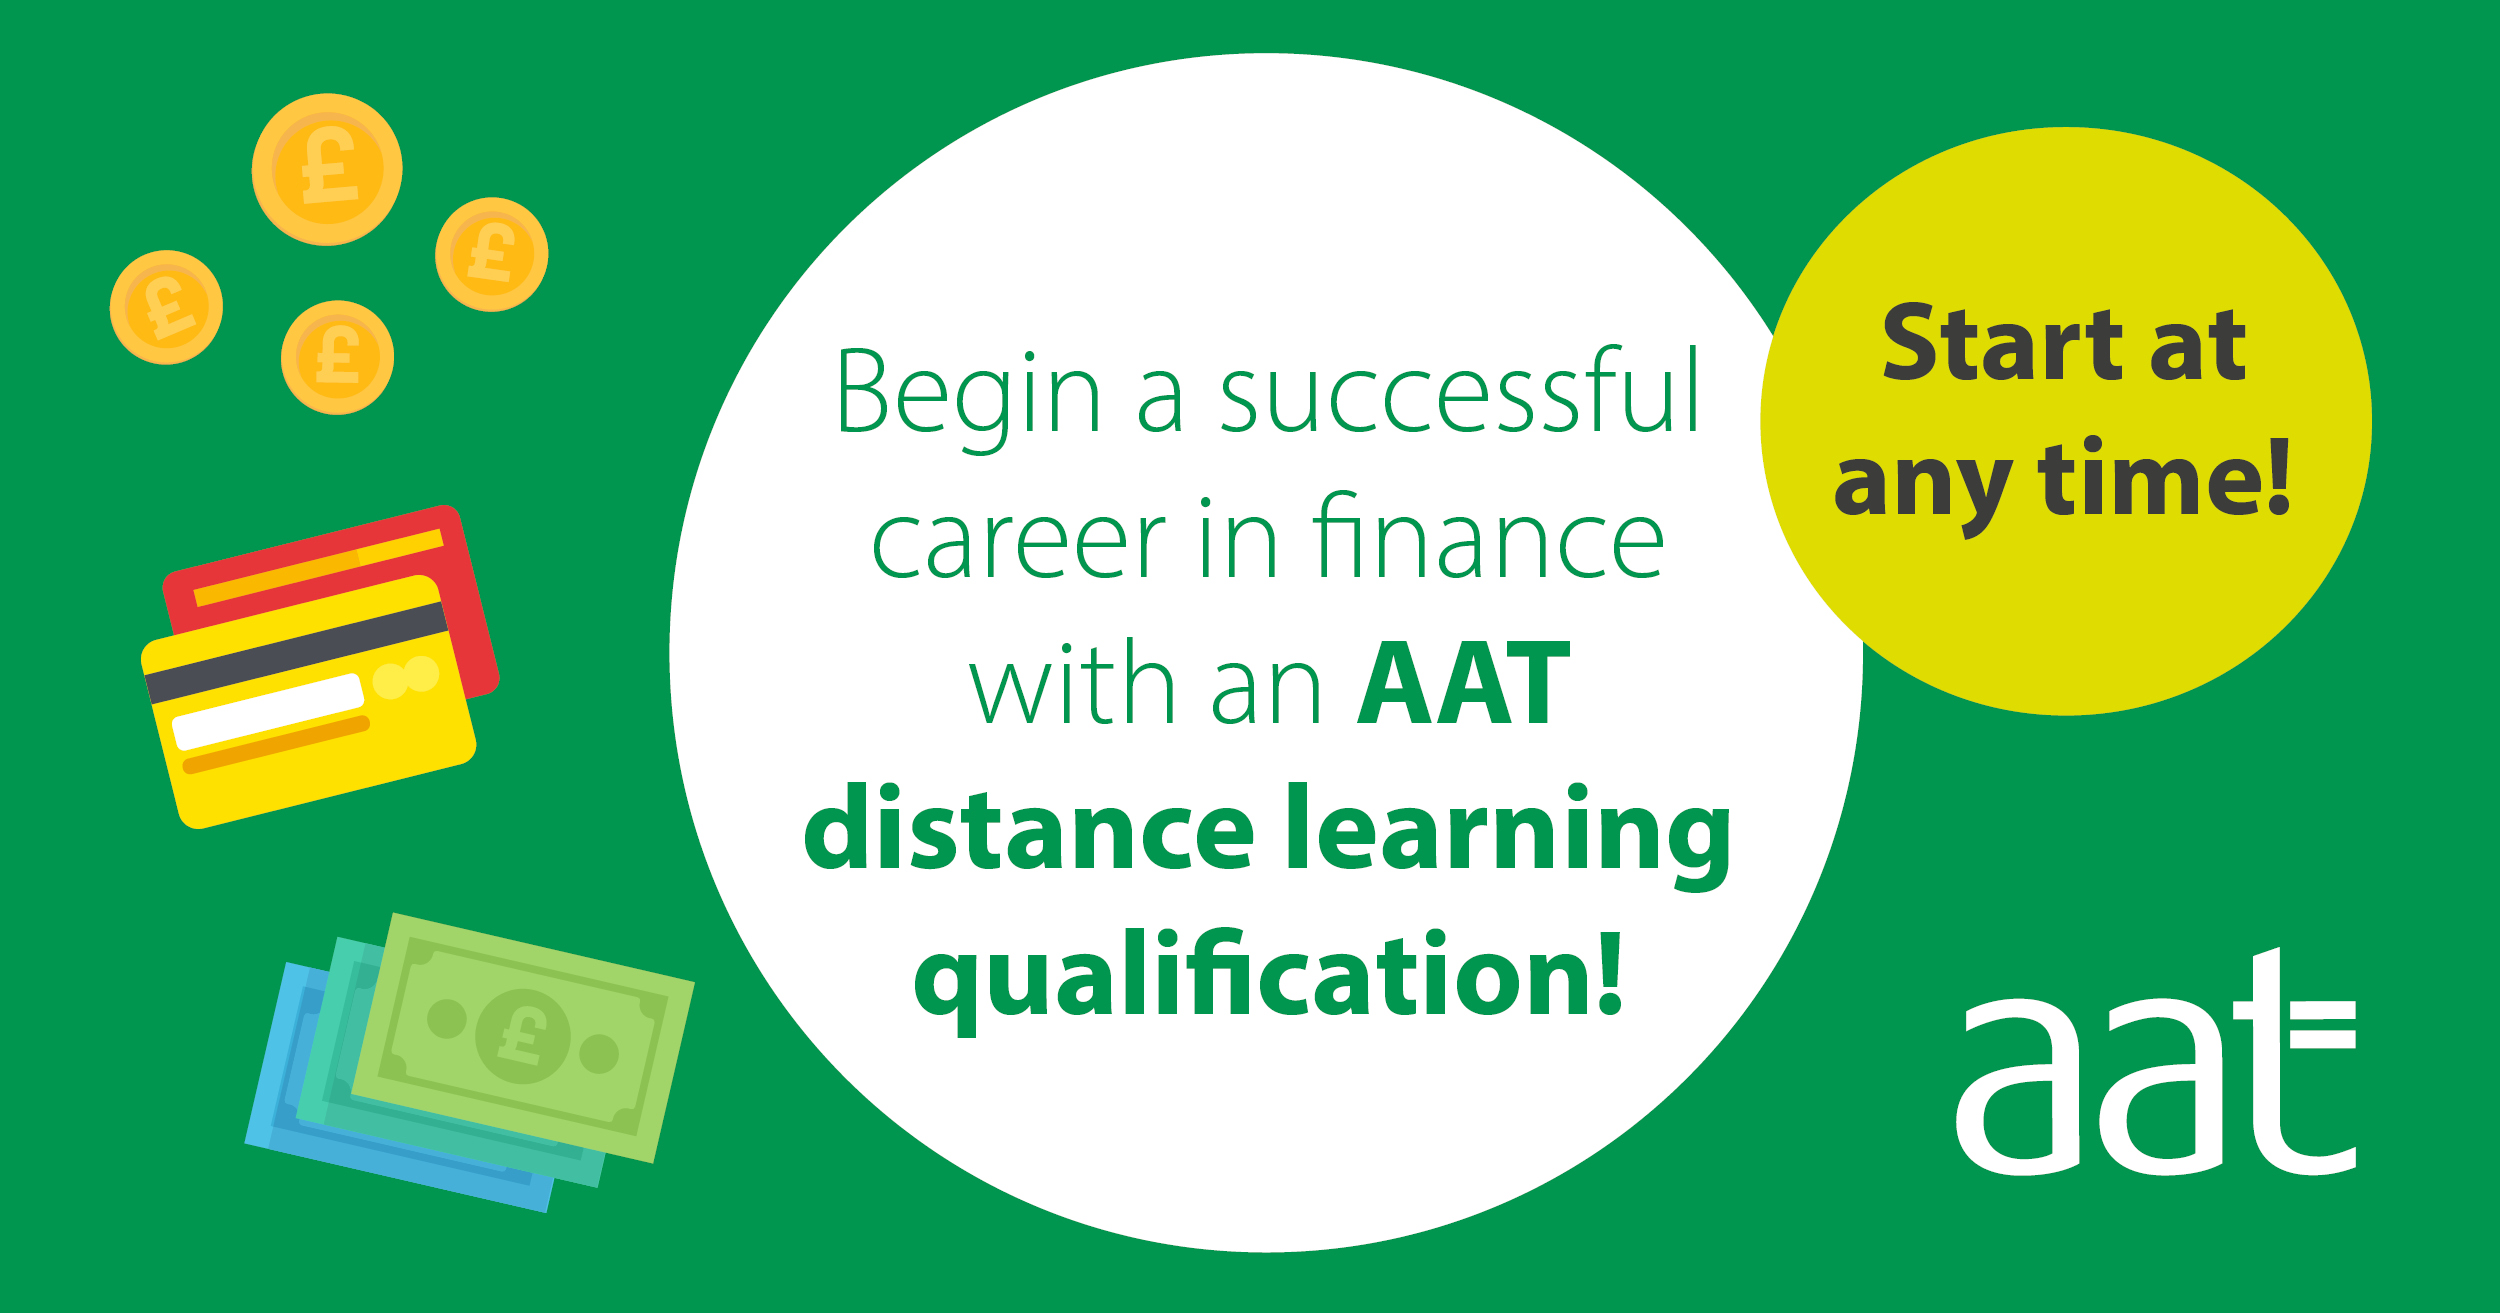 Begin a successful career in finance with an AAT distance learning qualification!